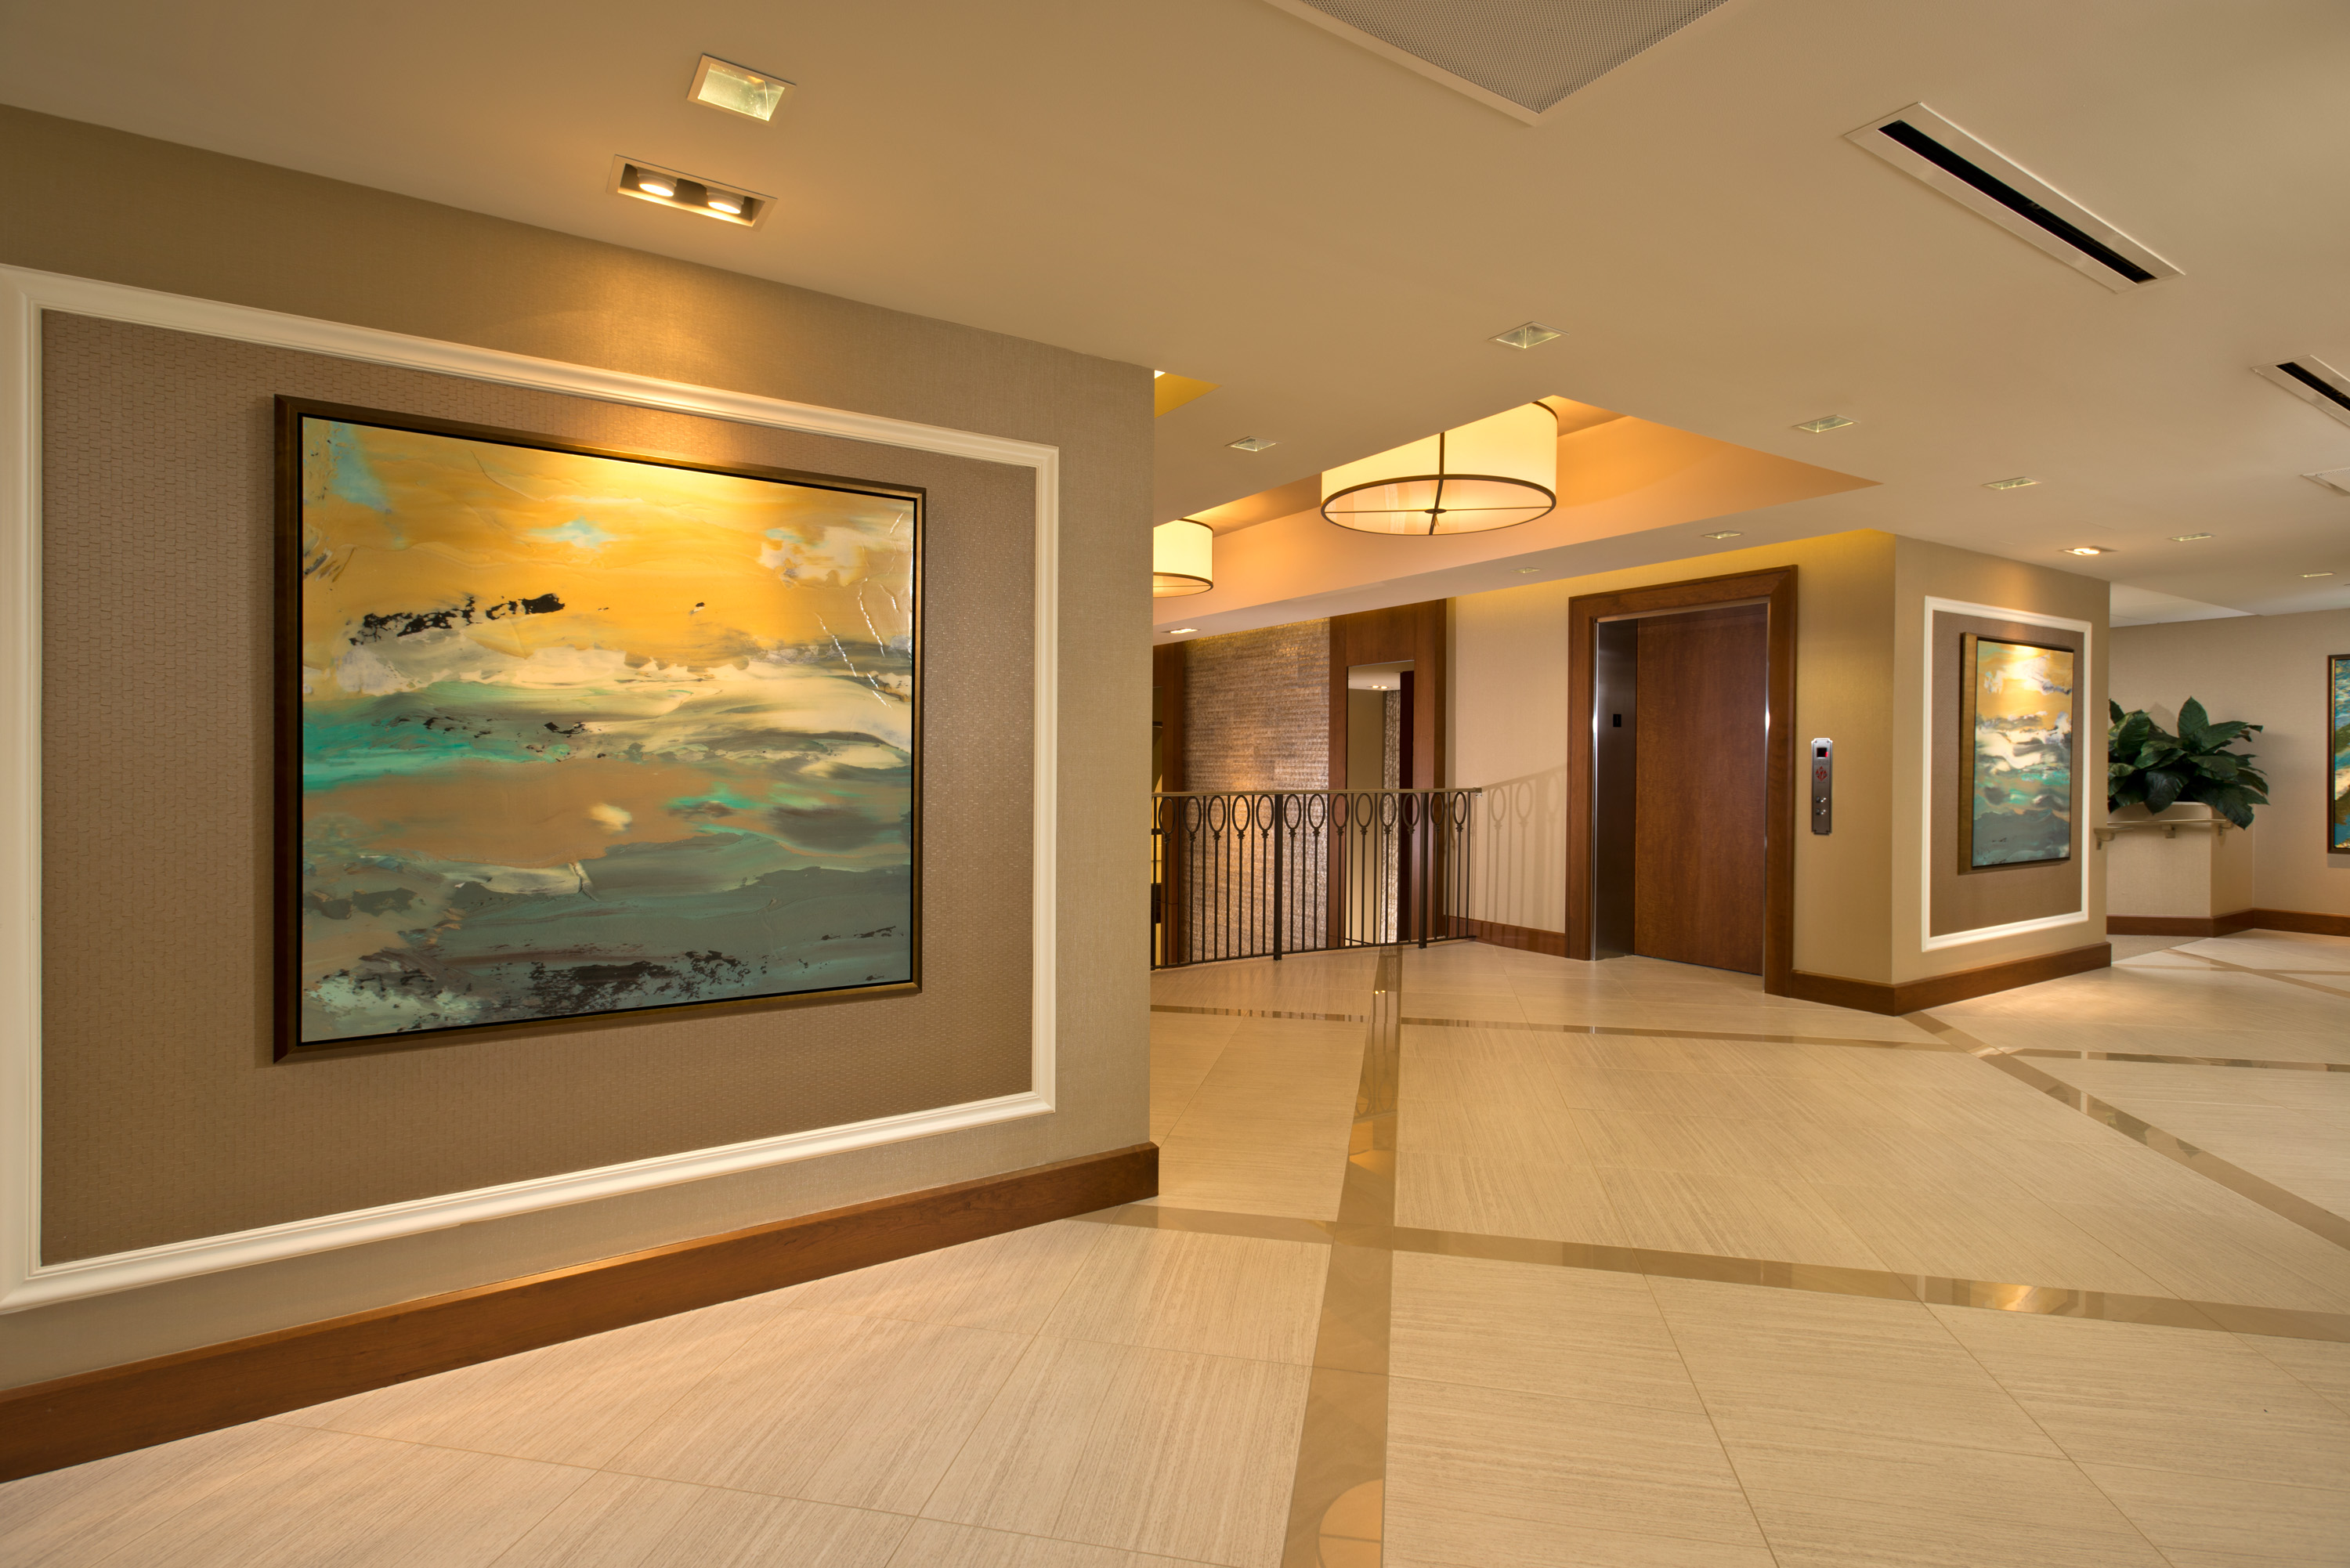 St. Kitts at Crown Colony Lobby Renovation